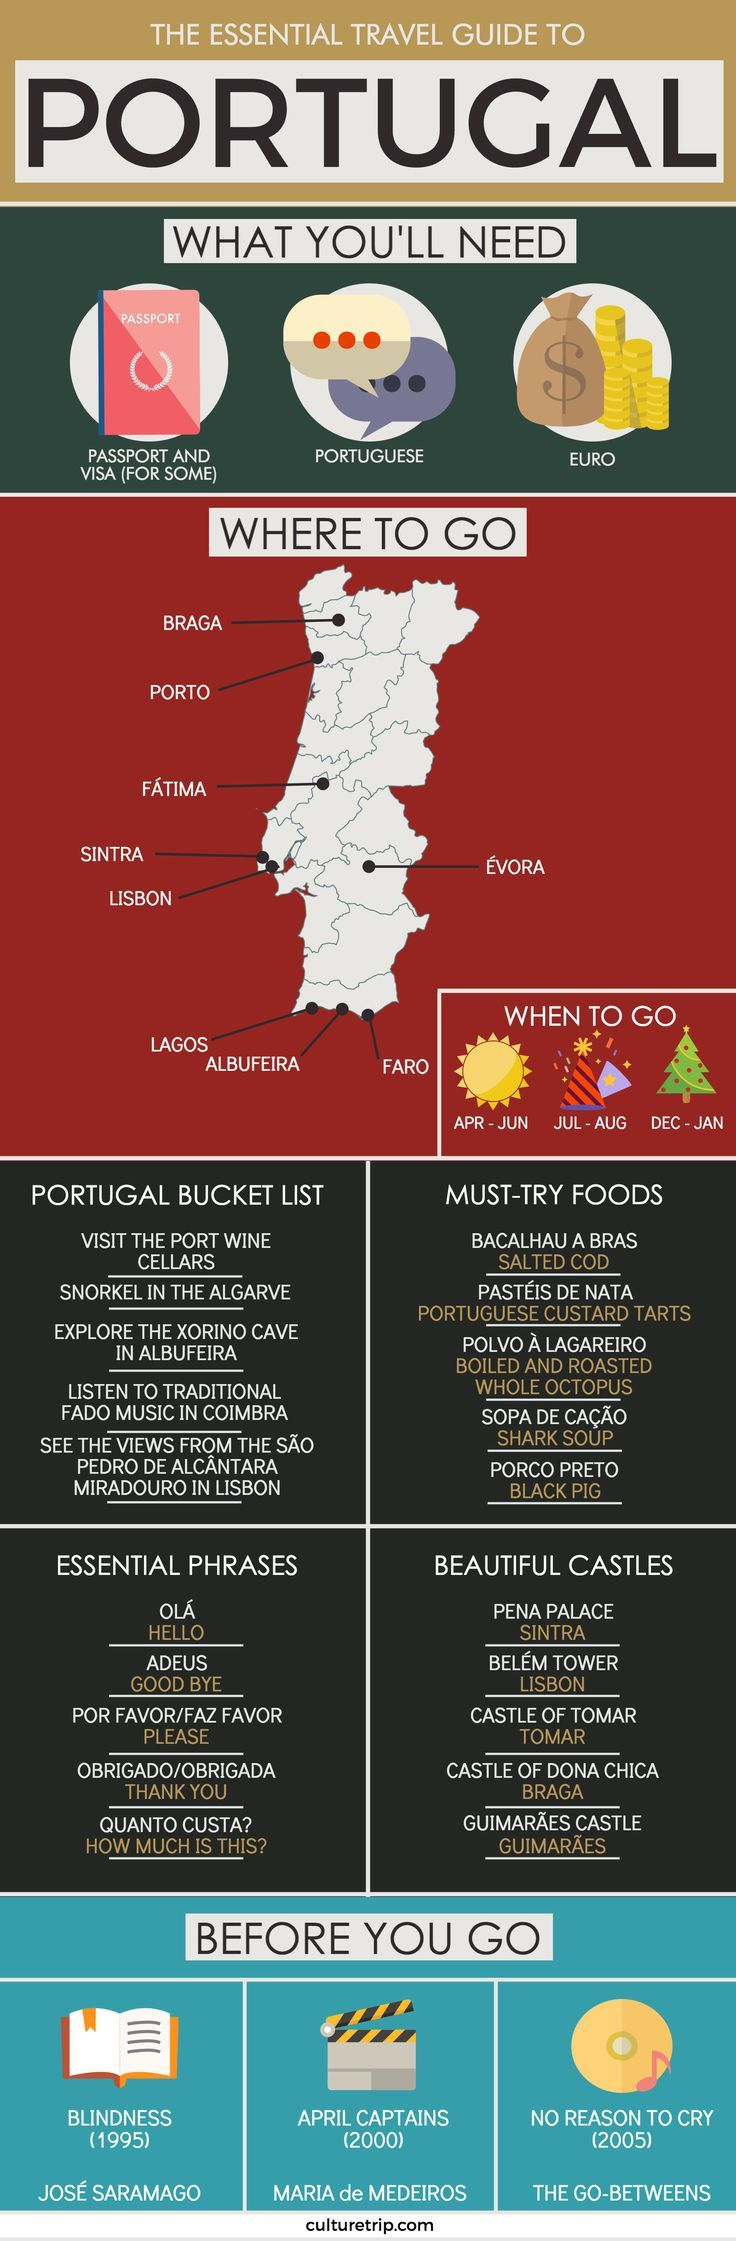 The Ultimate Guide To Portugal By The Culture Trip   RePinned by : http://www.powercouplelife.com